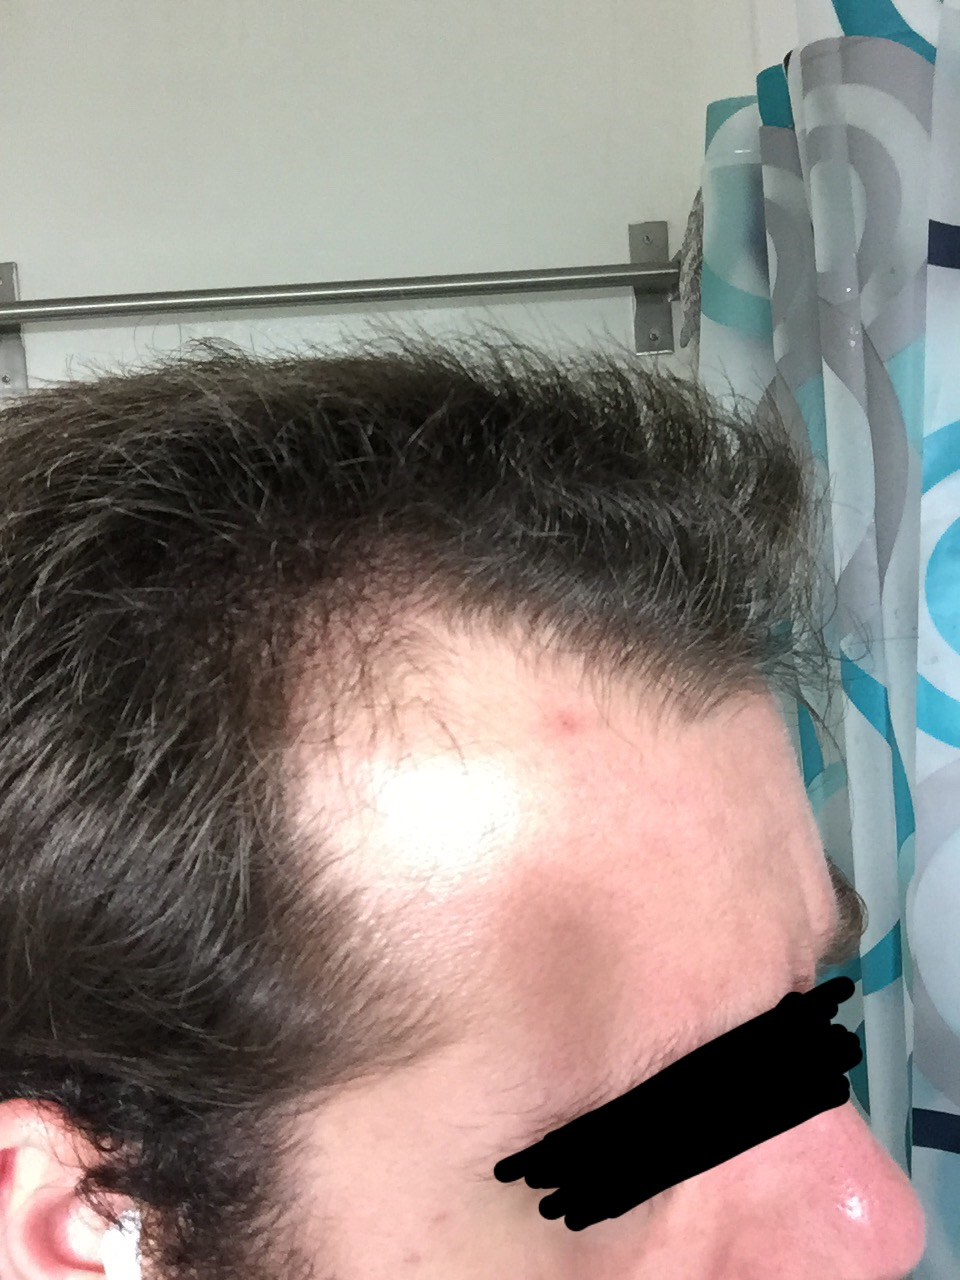 3rd Time Trying Finasteride This Time At 25mg Still Got Side Effects Page 3 Hairlosstalk Forums